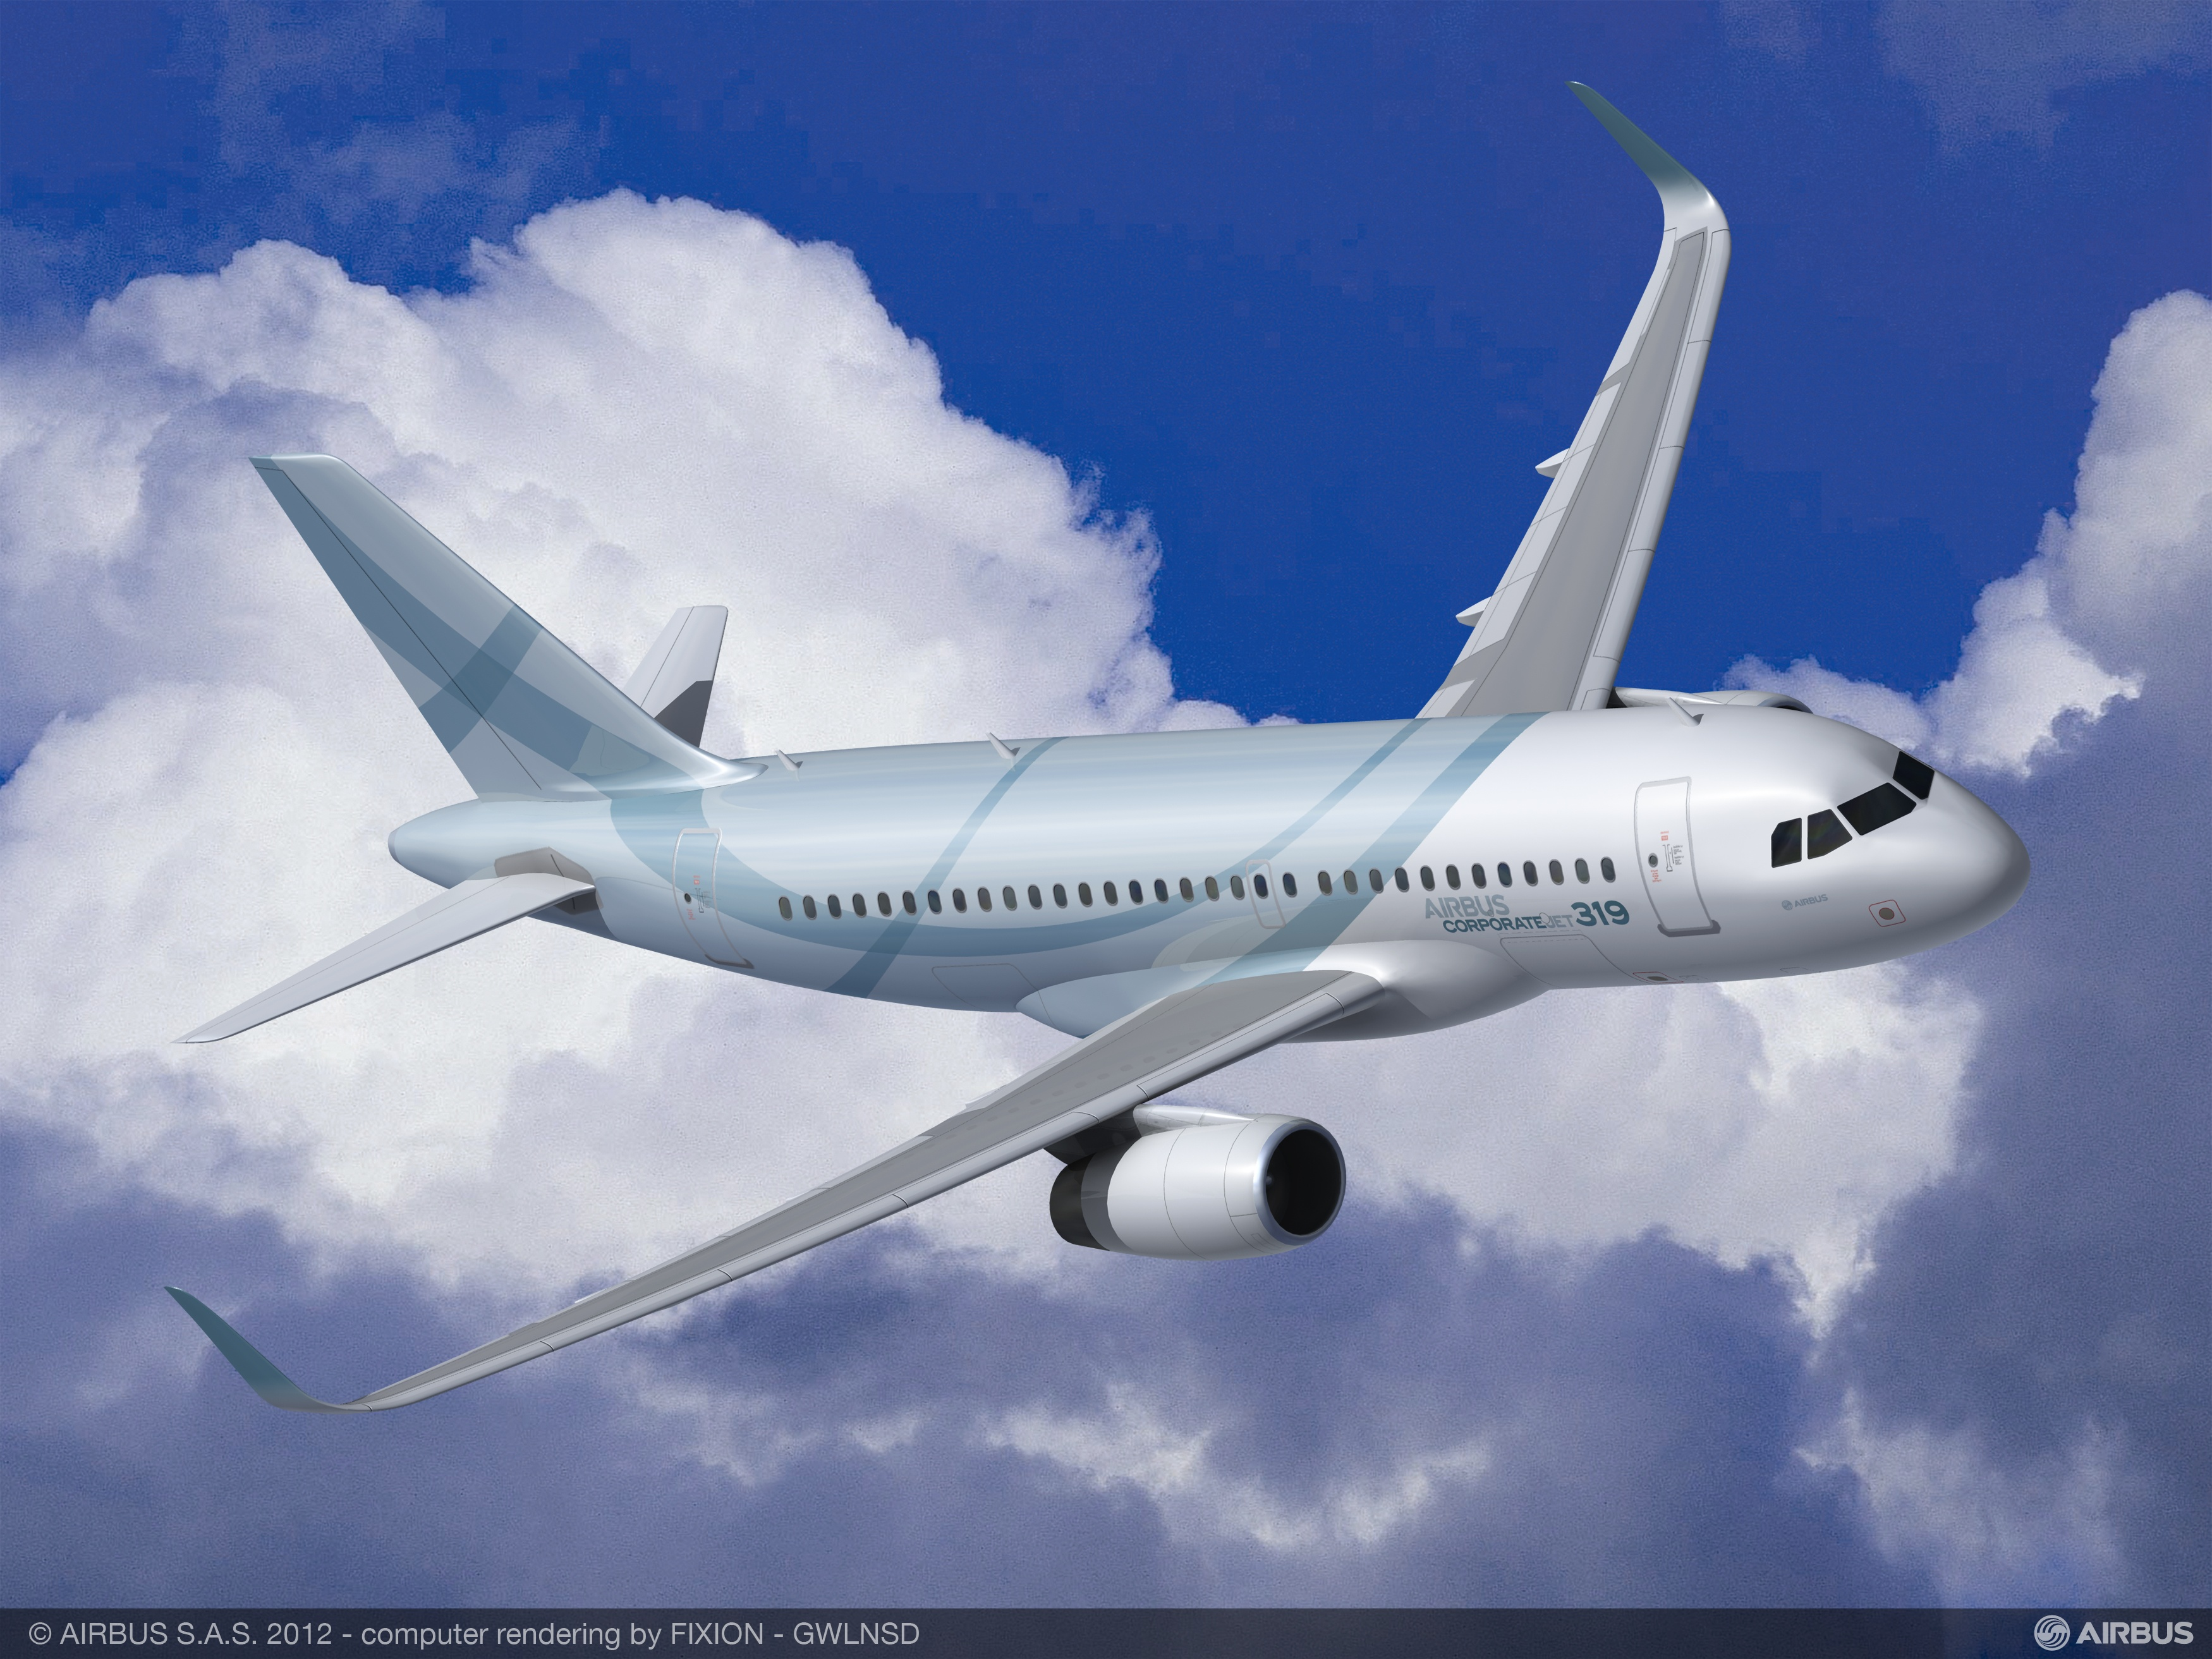 Airbus_ACJ319_Three-quarter_front.jpg